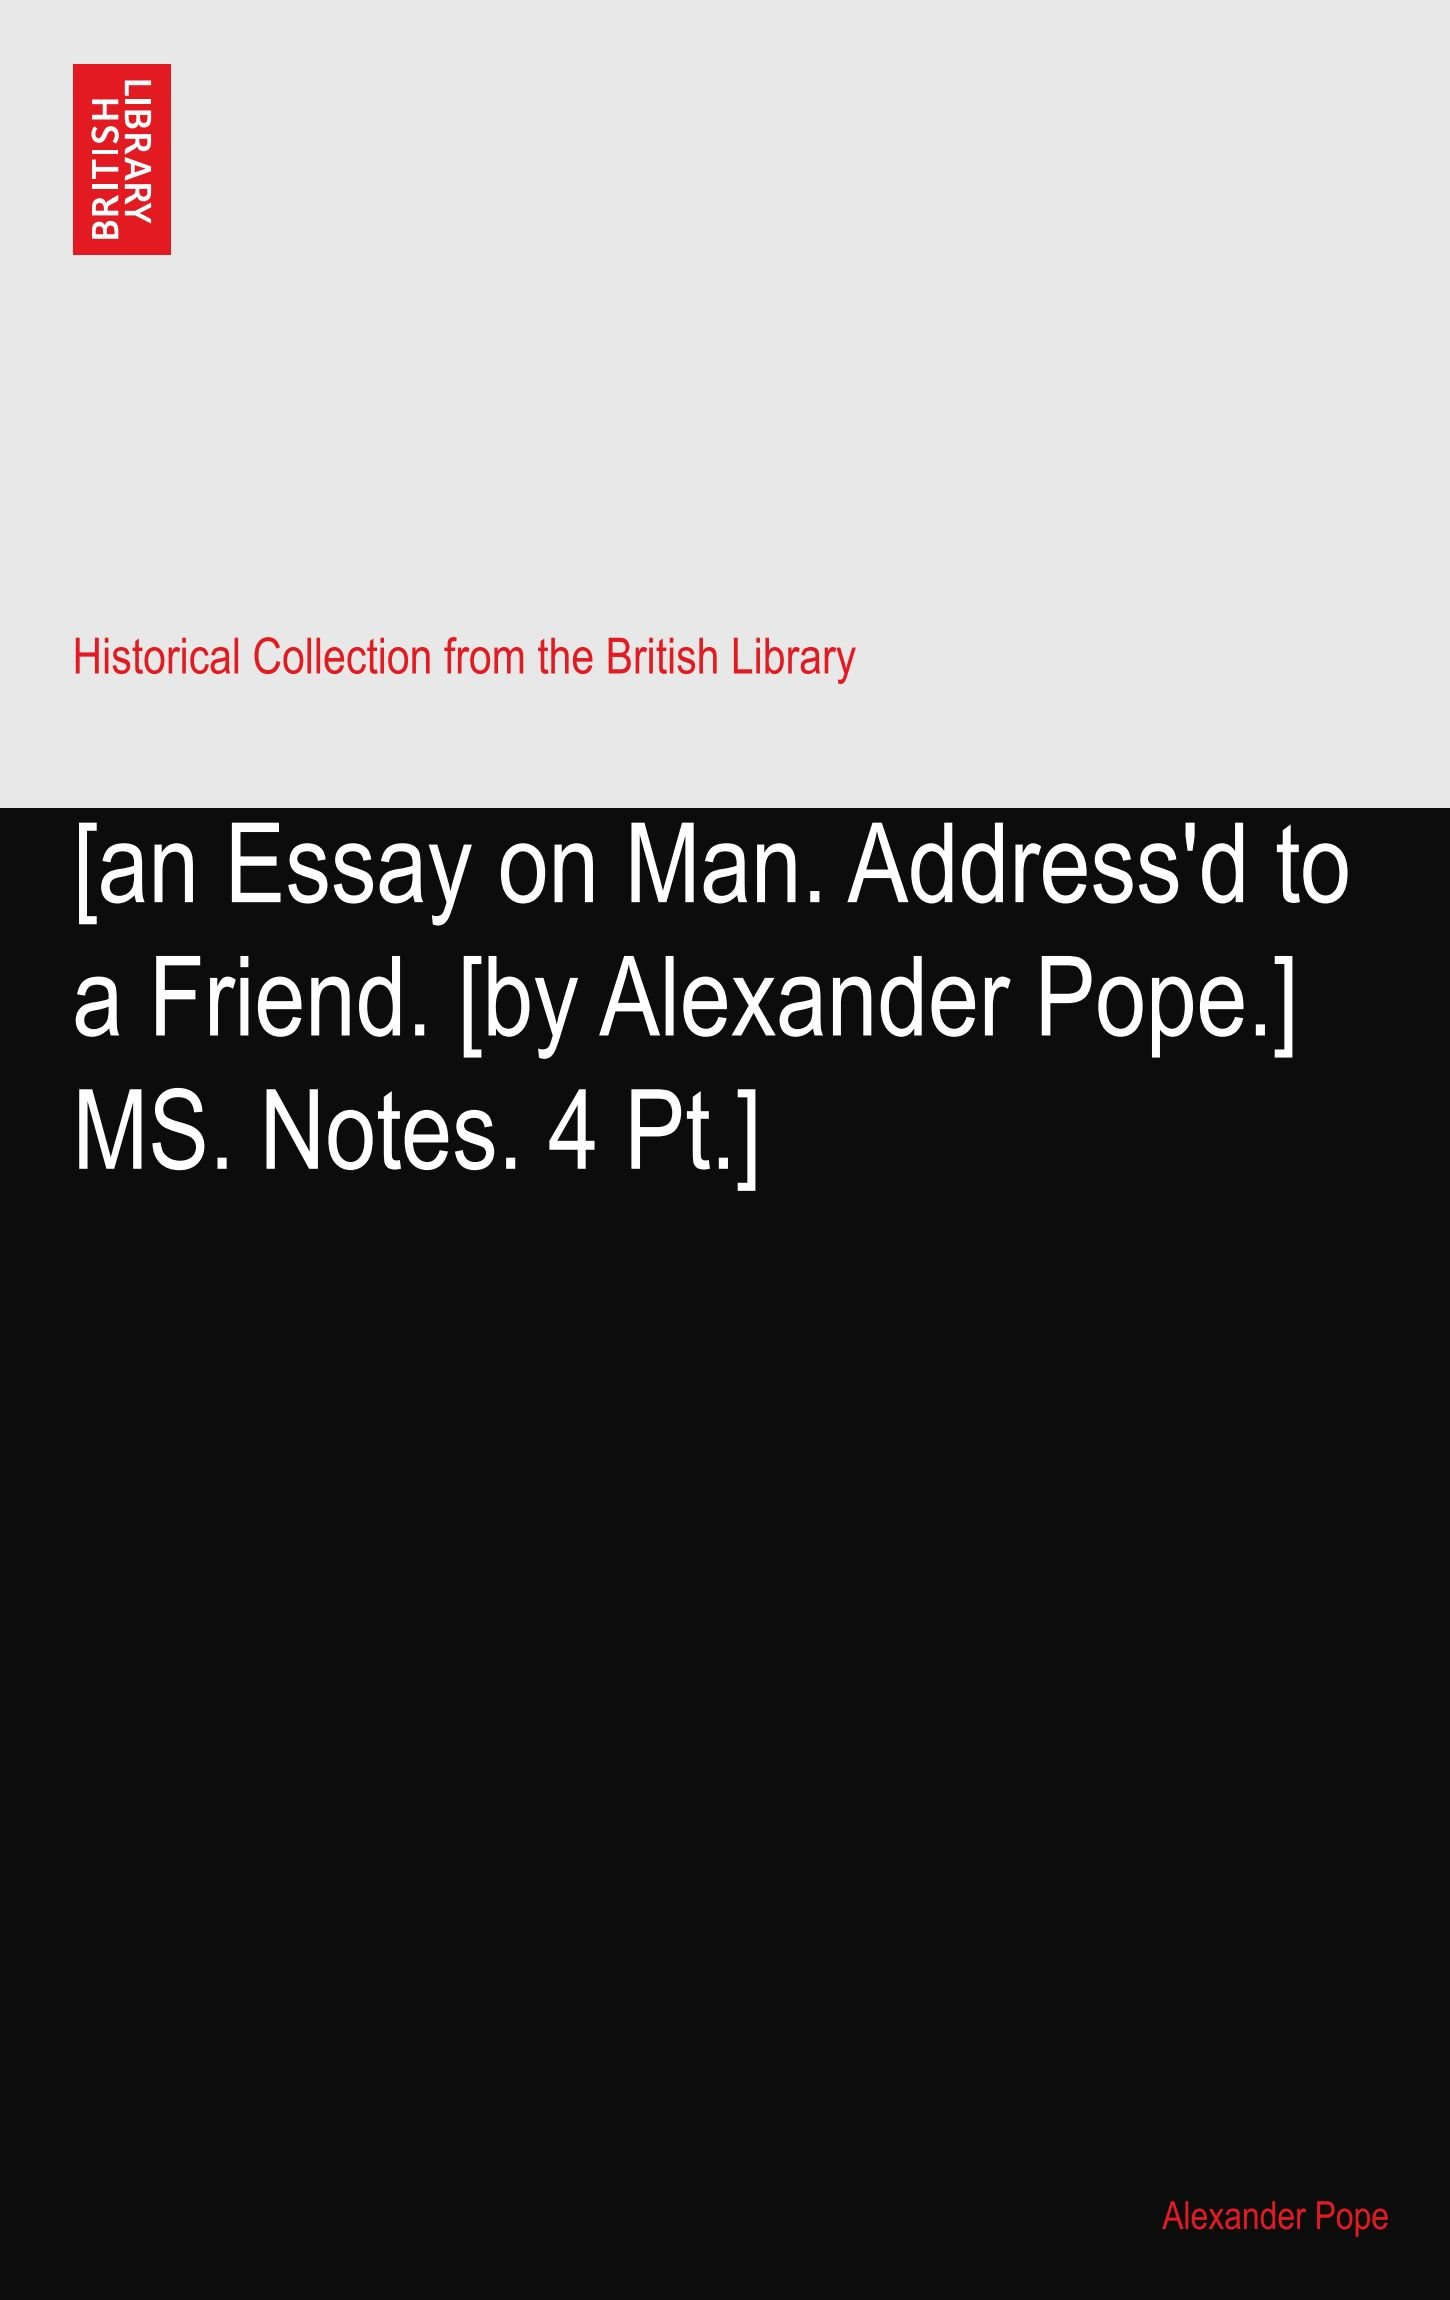 [an Essay on Man. Address'd to a Friend. [by Alexander Pope.] MS. Notes. 4 Pt.] PDF